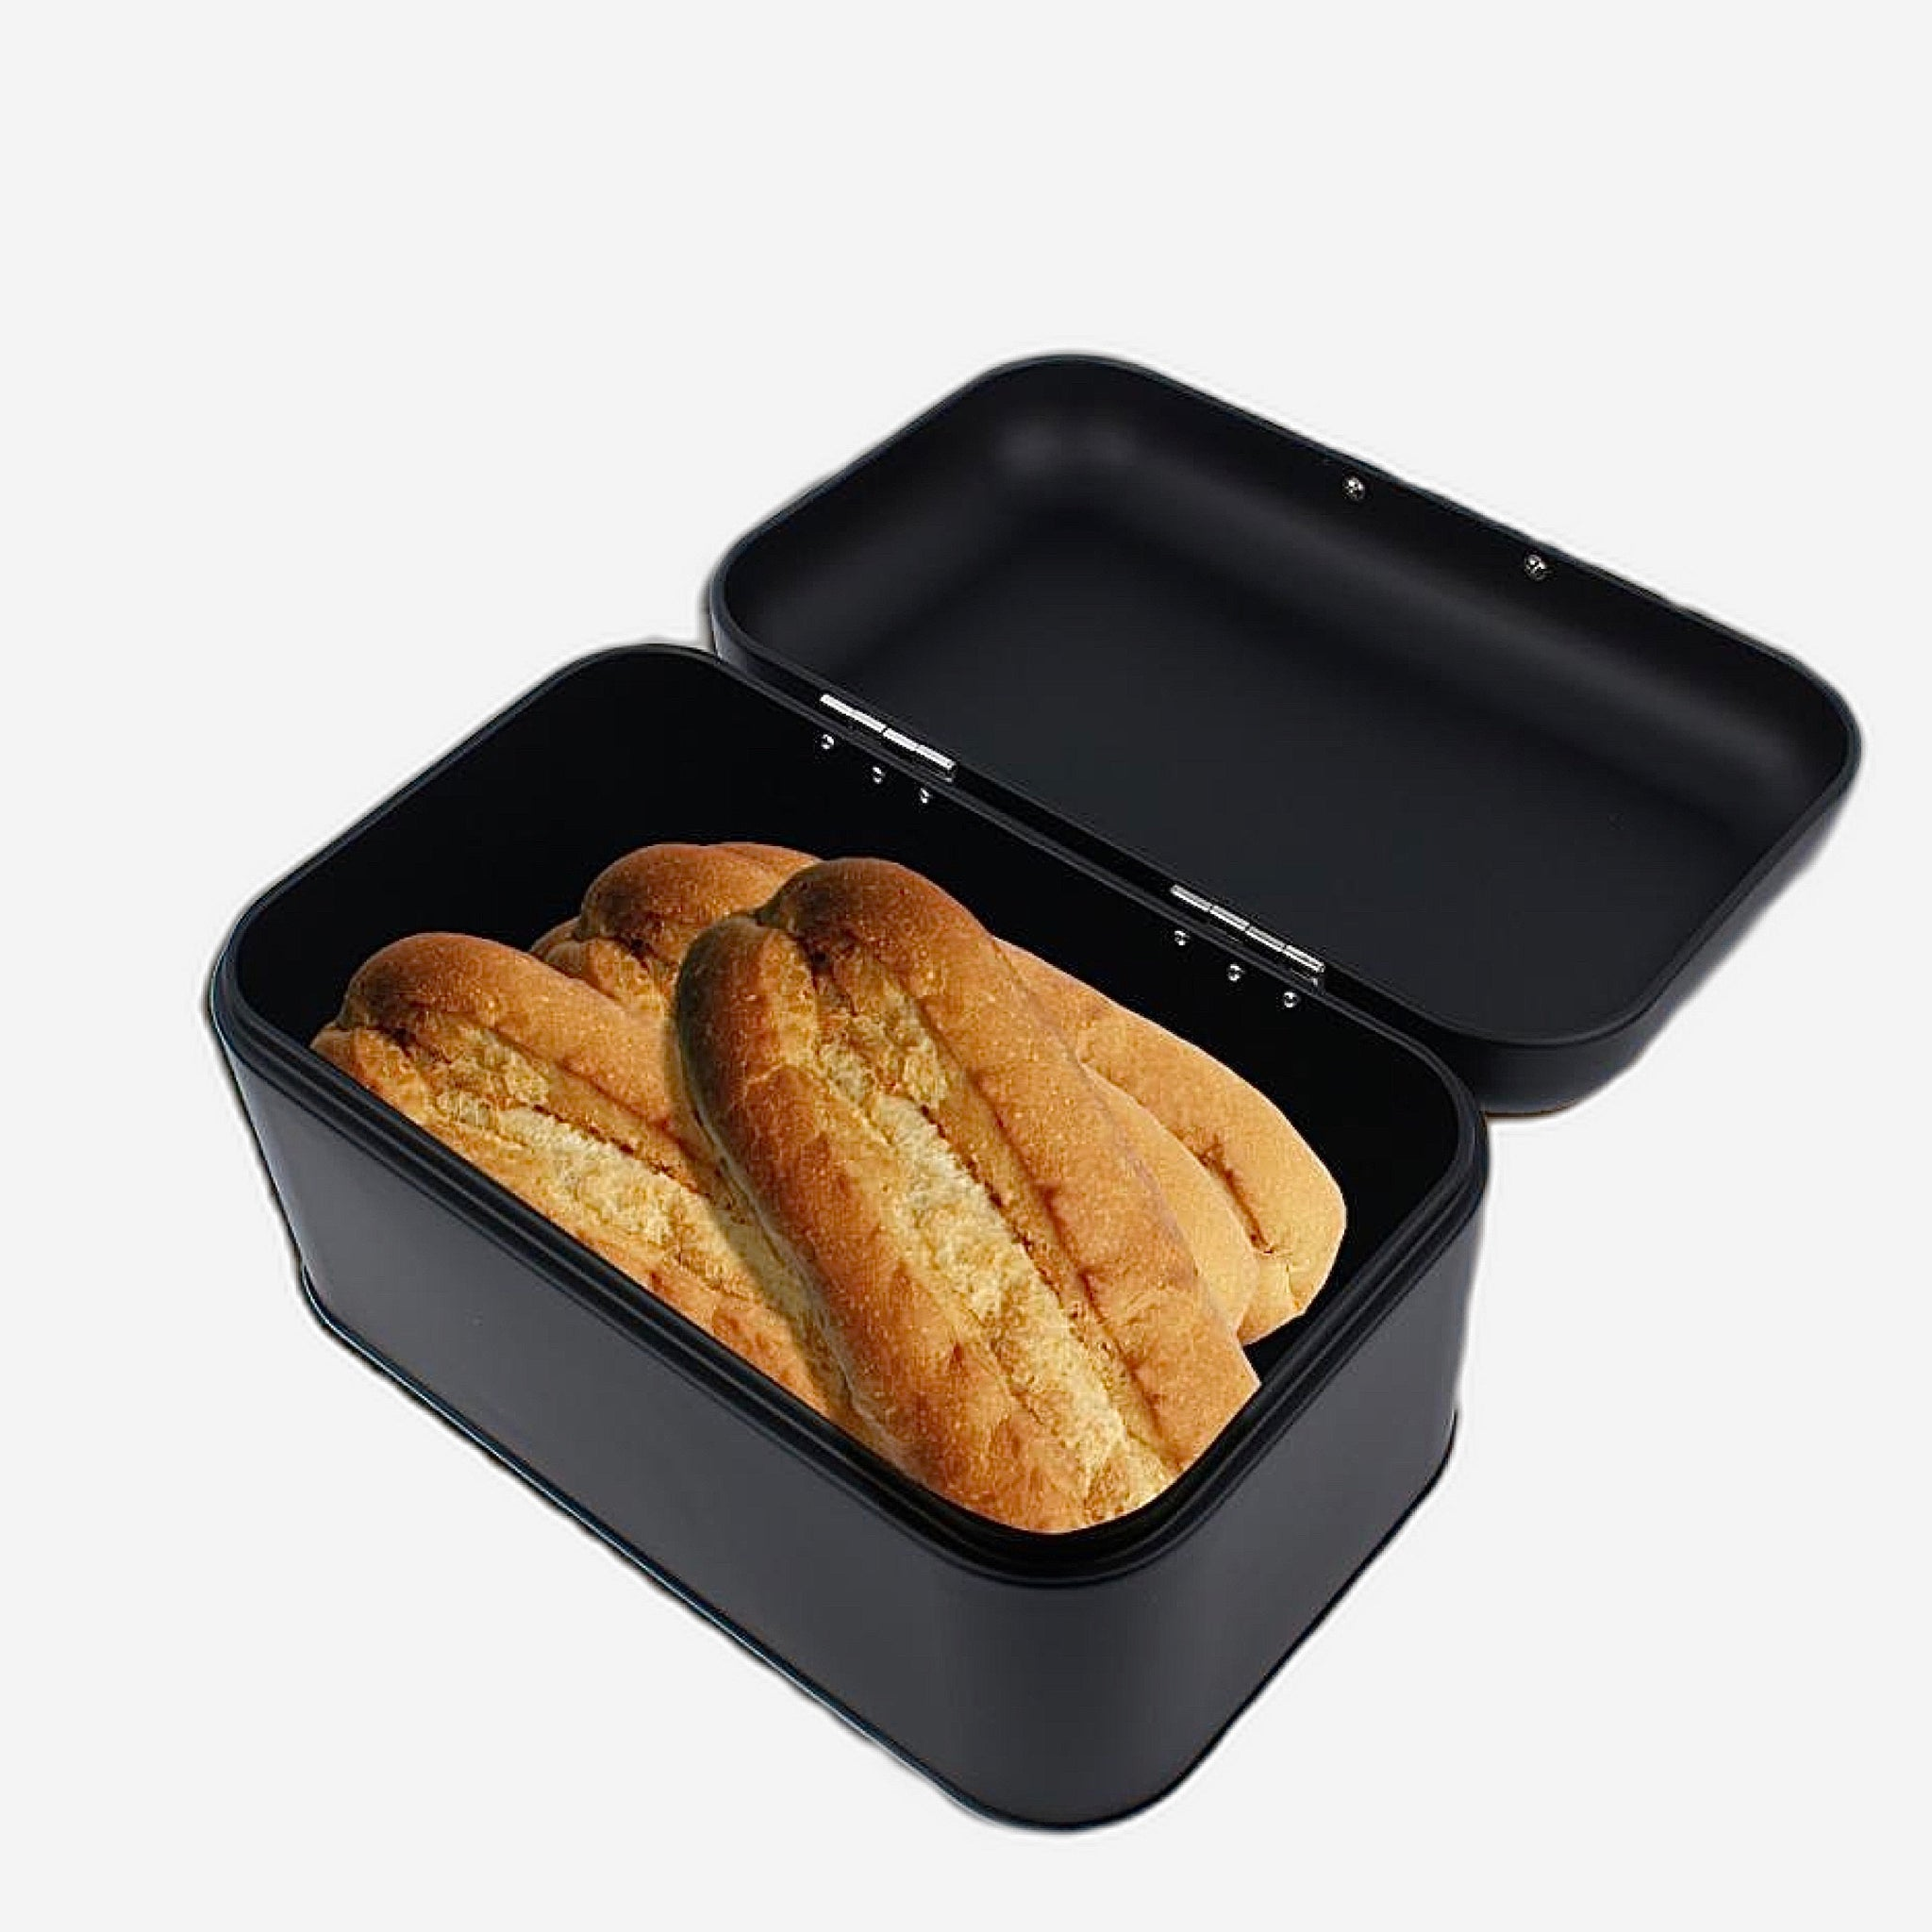 Retro Black Metal Bread Box Bread Storage Organizer Boxes Solid Color Large Capacity Bin Kitchen Storage Container Trending Style